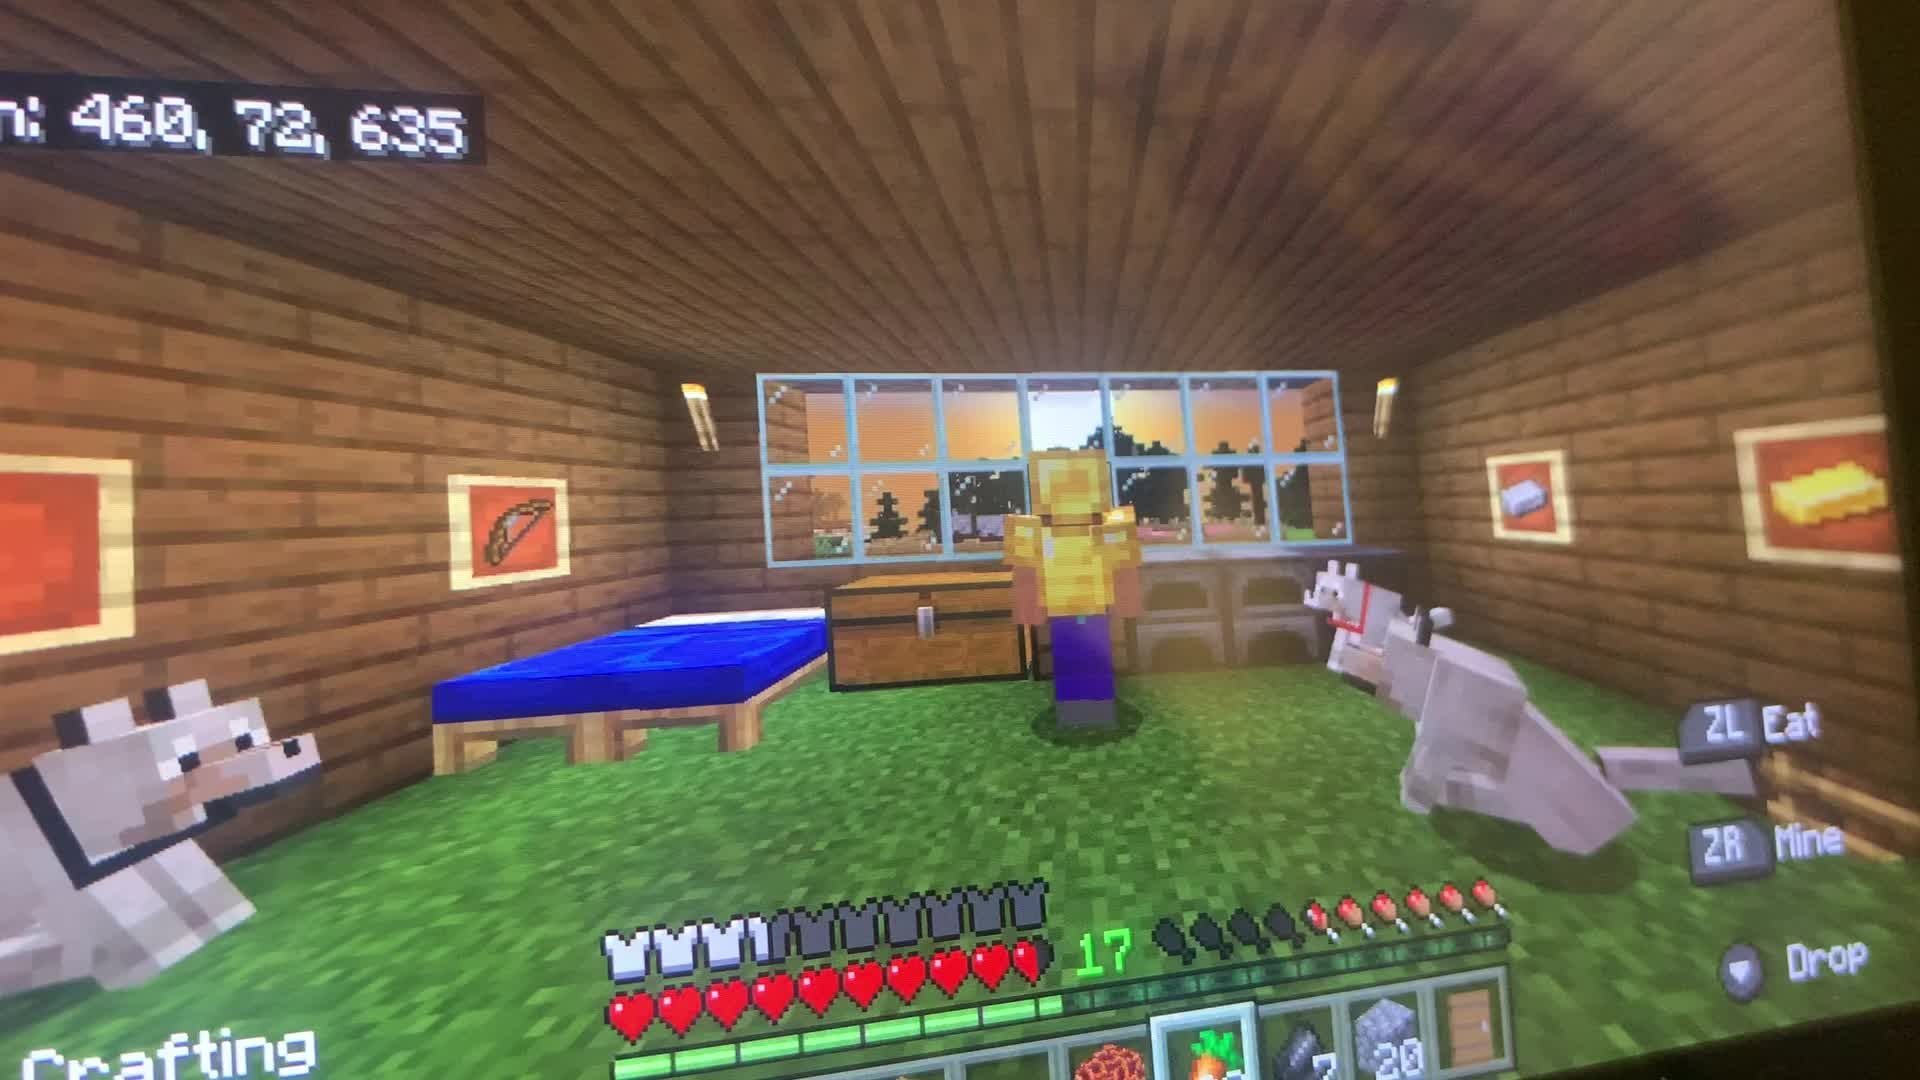 Minecraft: General - Do you ever play and then just... video cover image 0